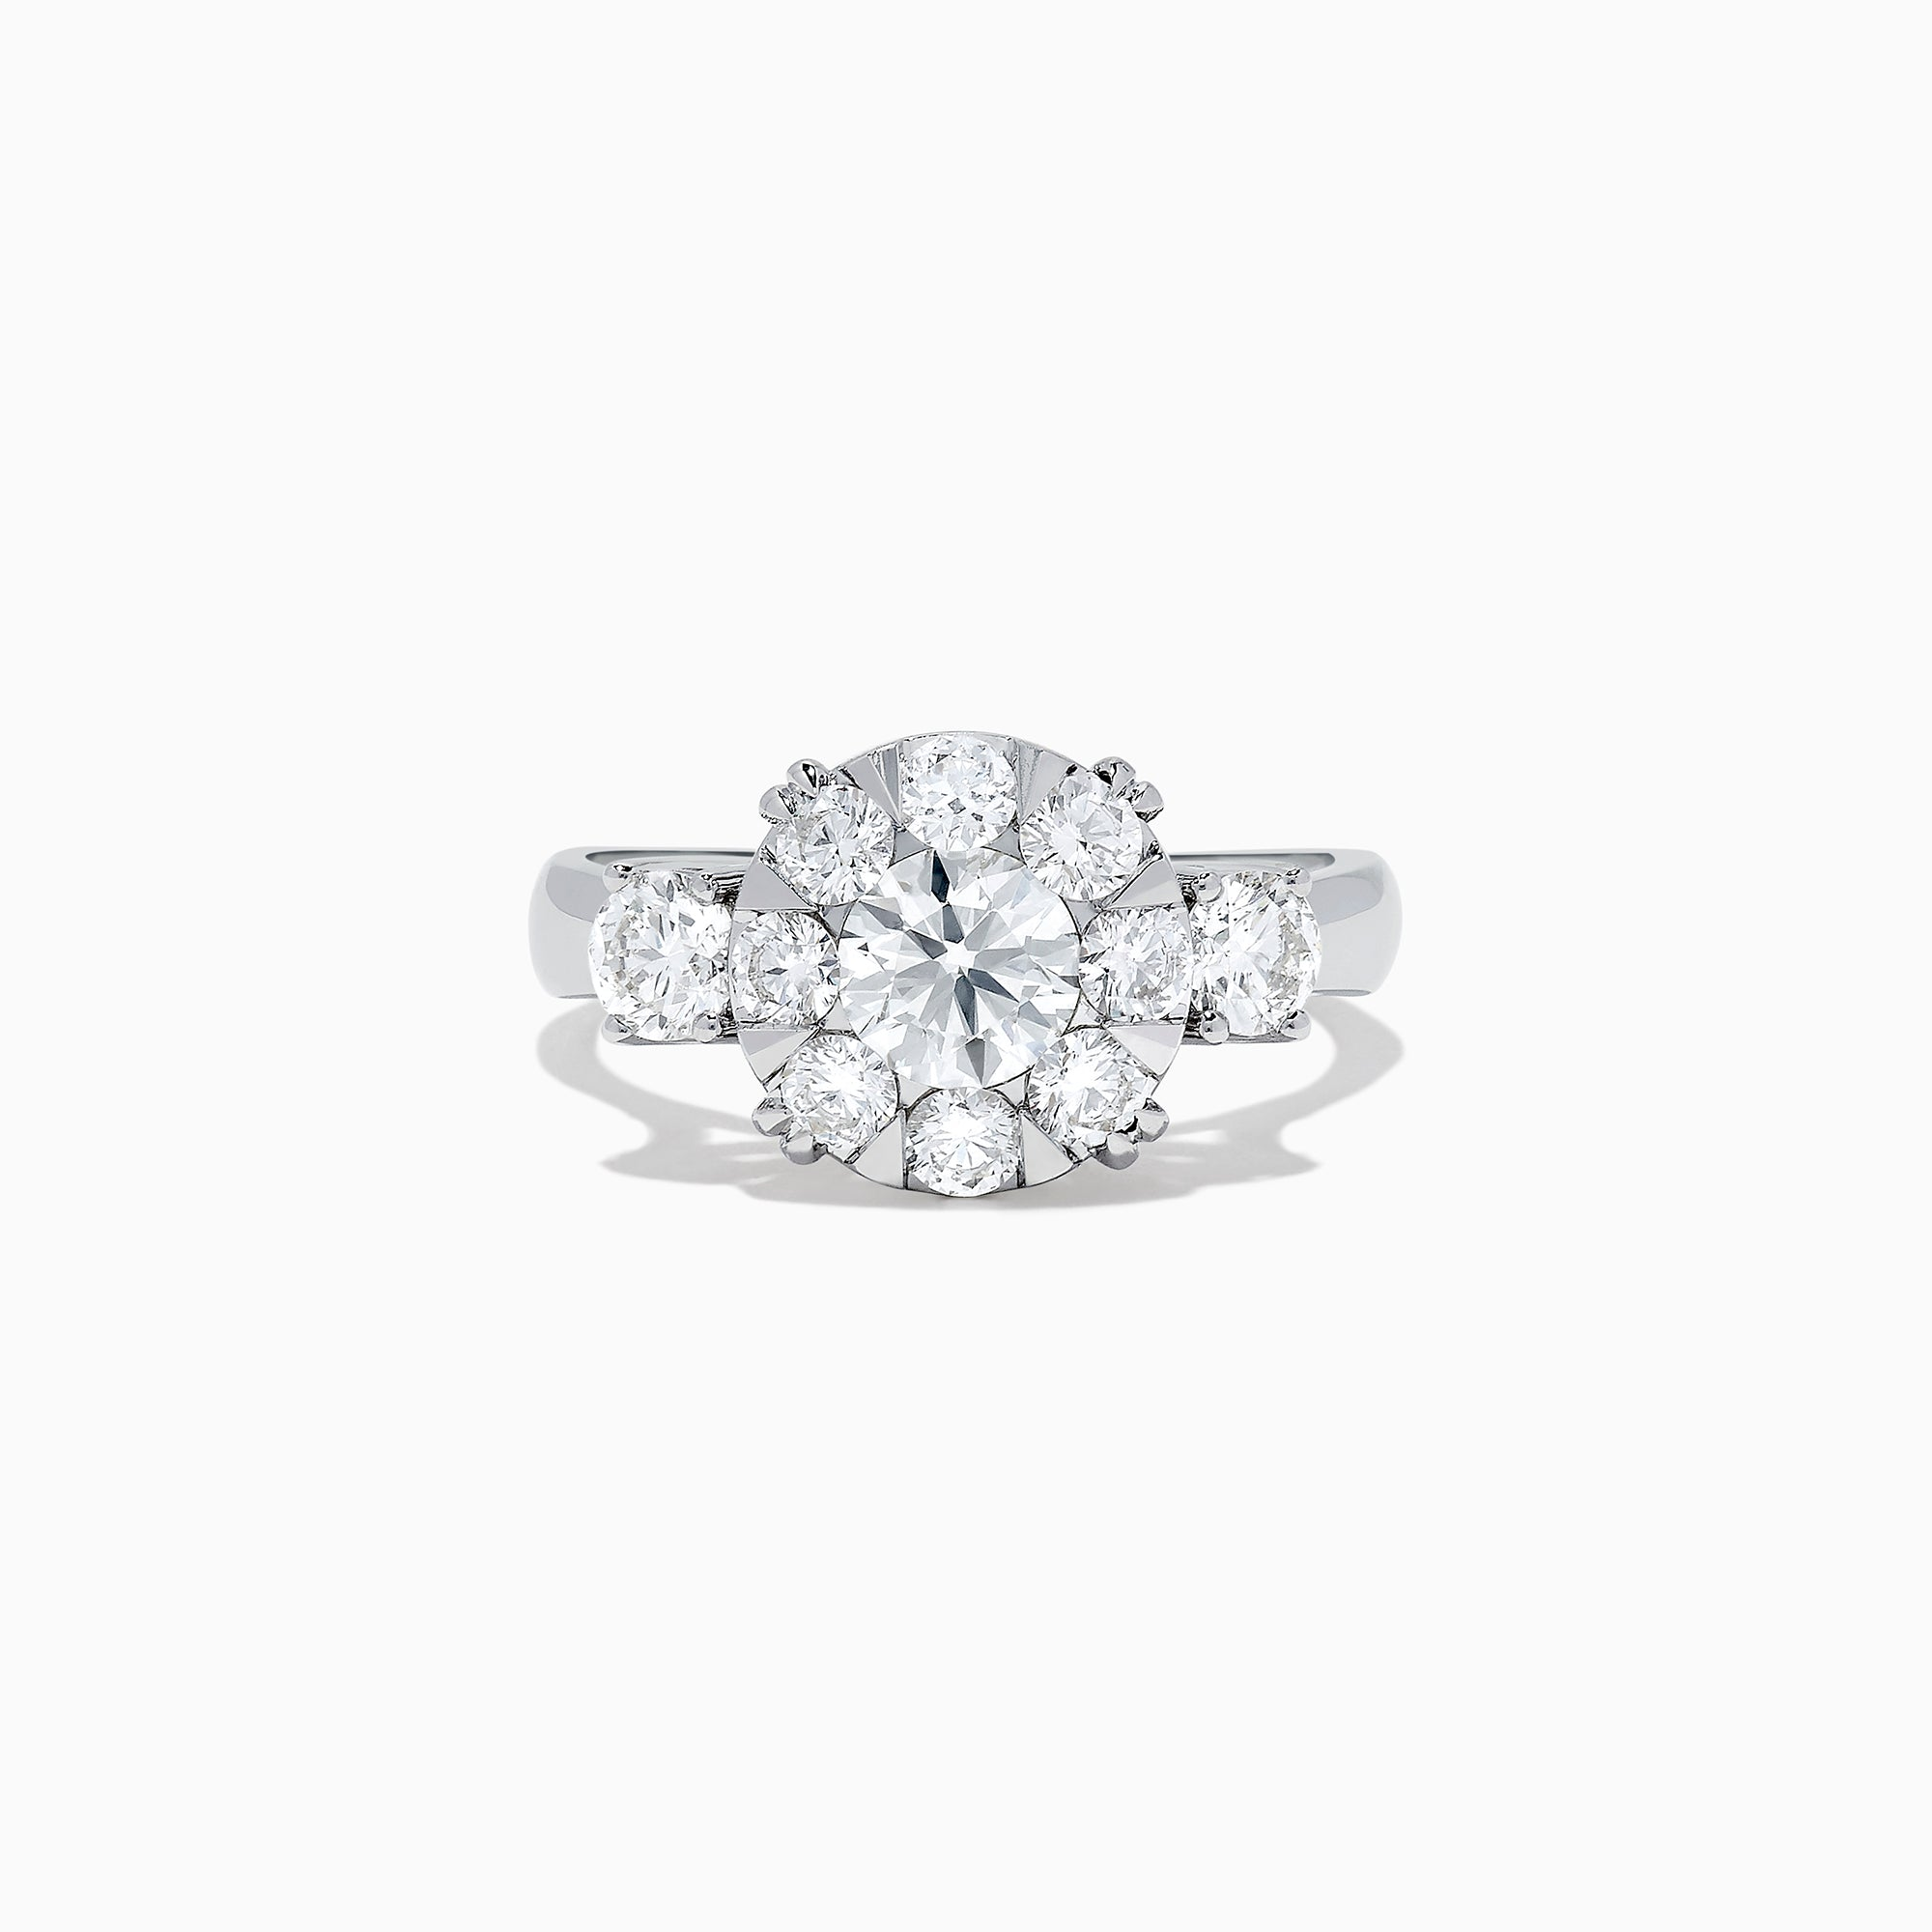 Effy Bouquet 14K White Gold Diamond Cluster Ring, 1.91 TCW